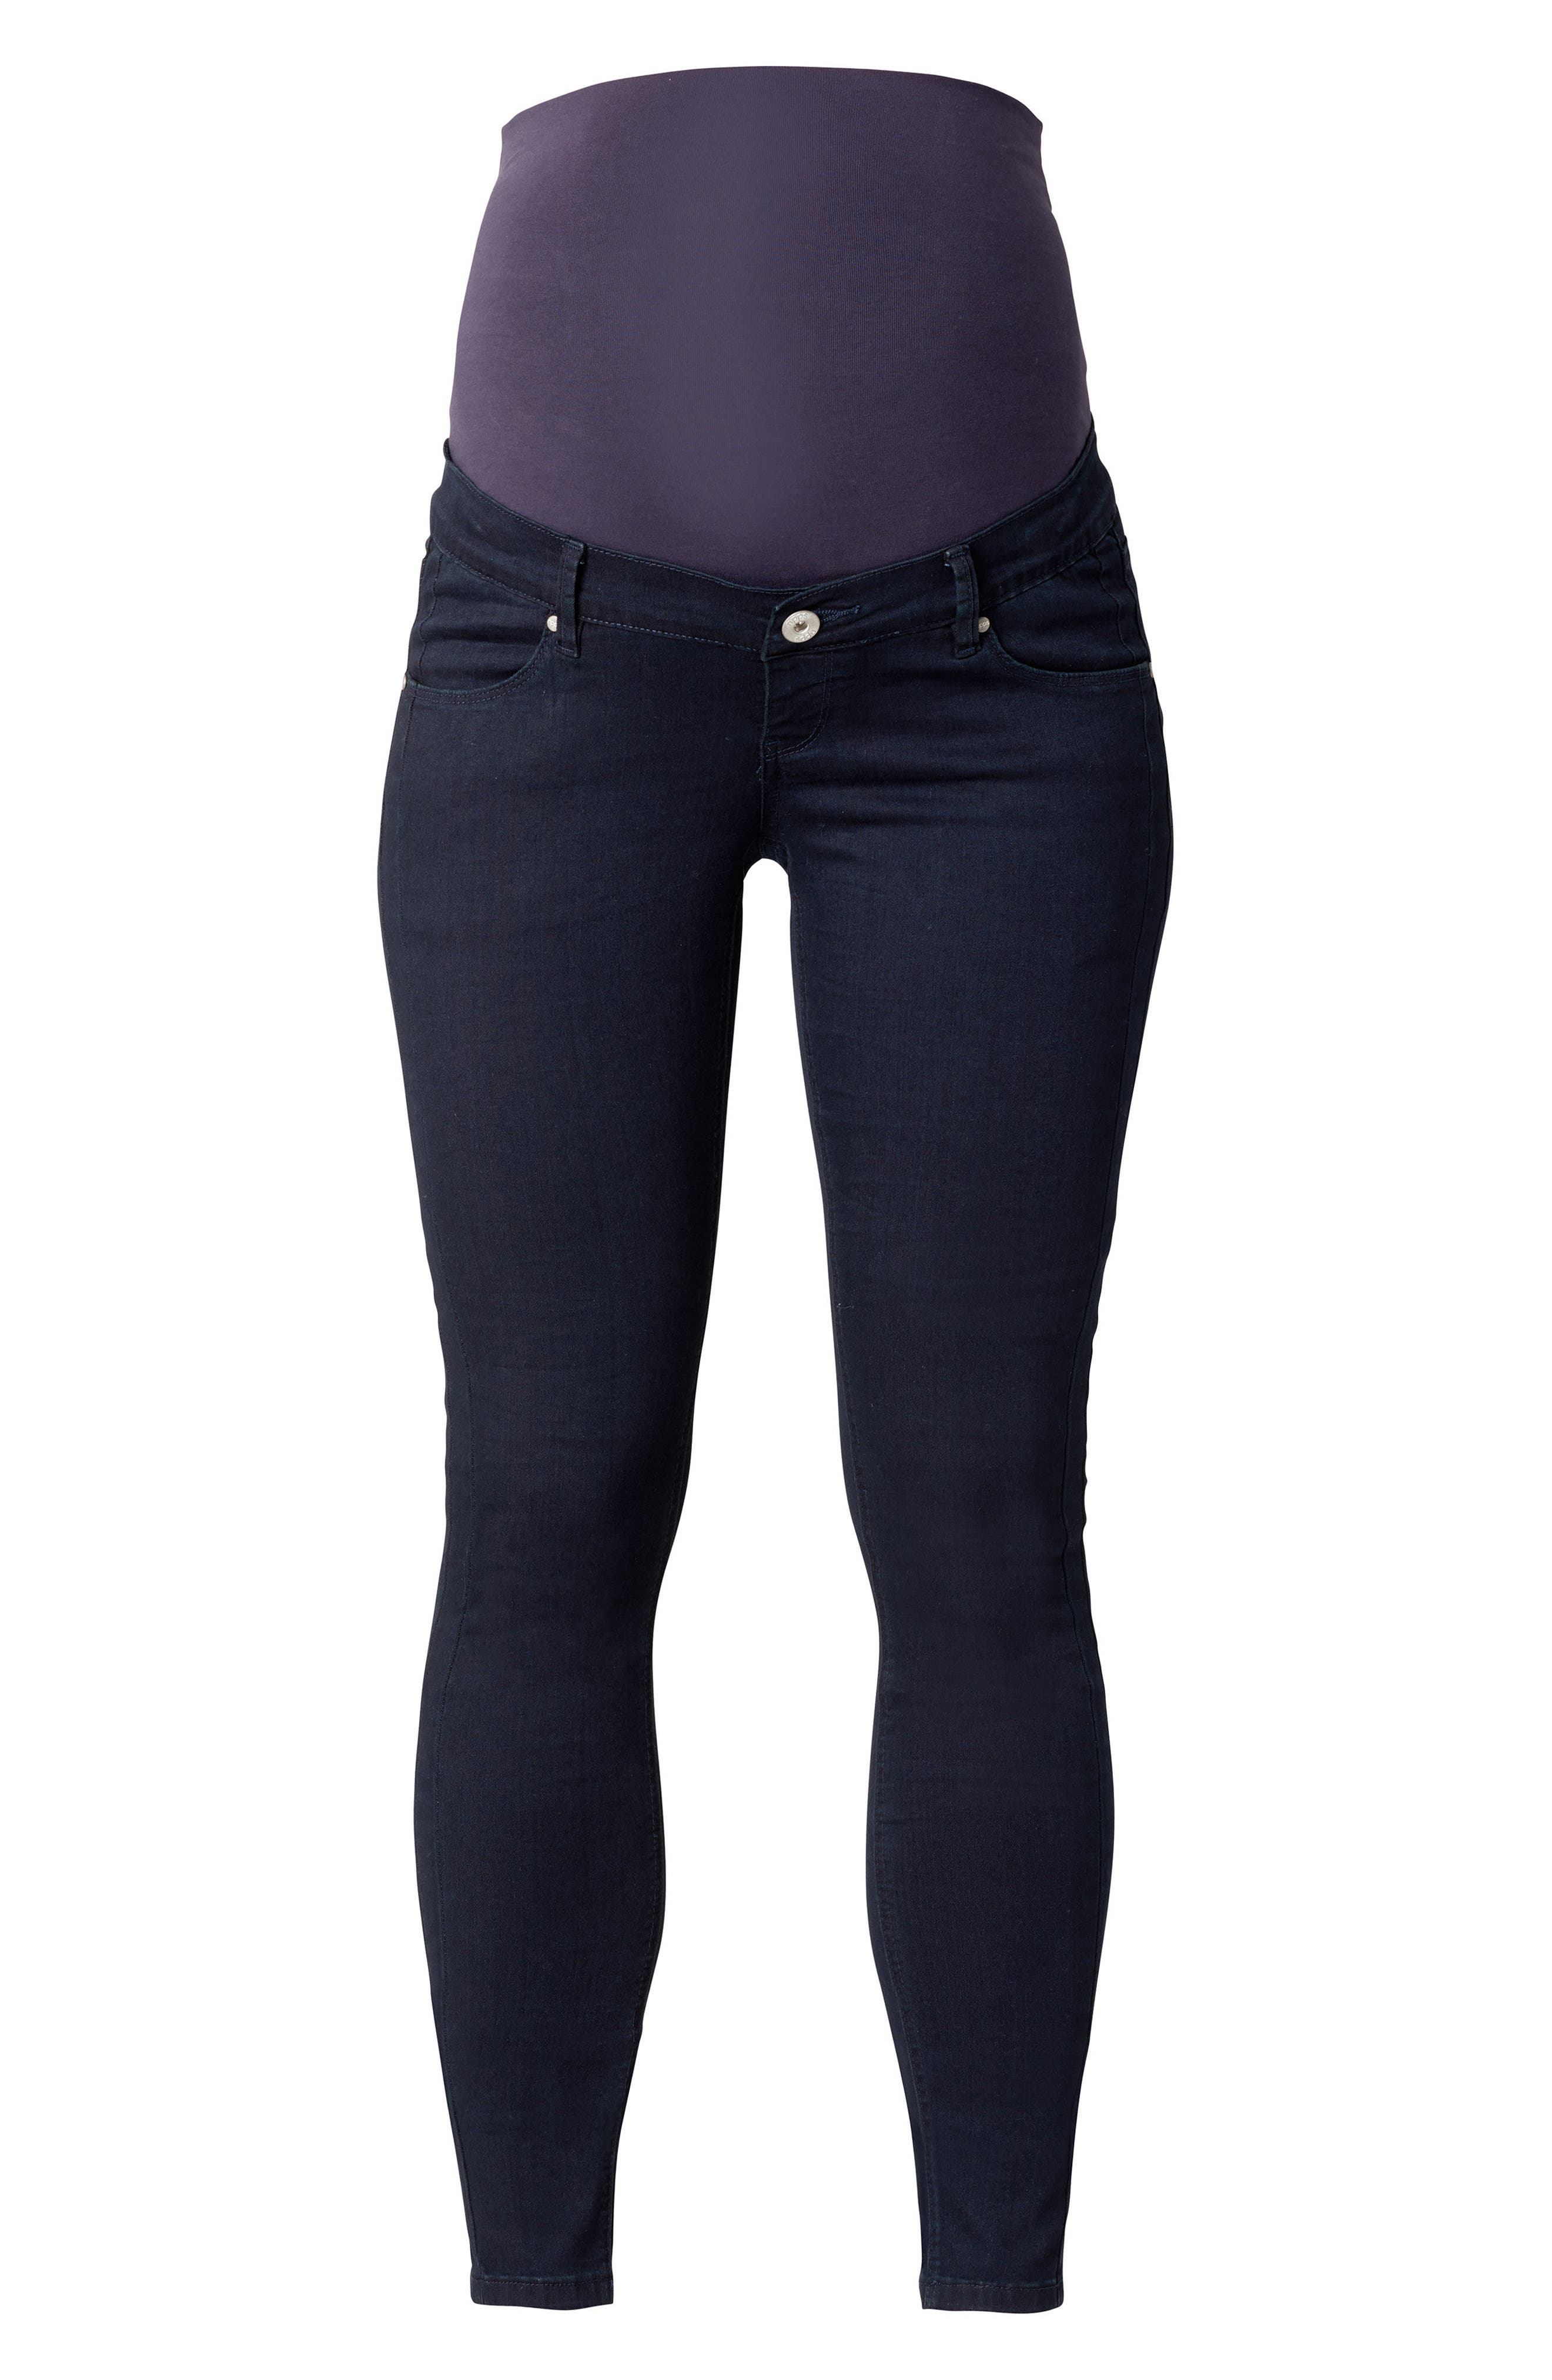 Noppies Avi Over the Belly Maternity Skinny Jeans